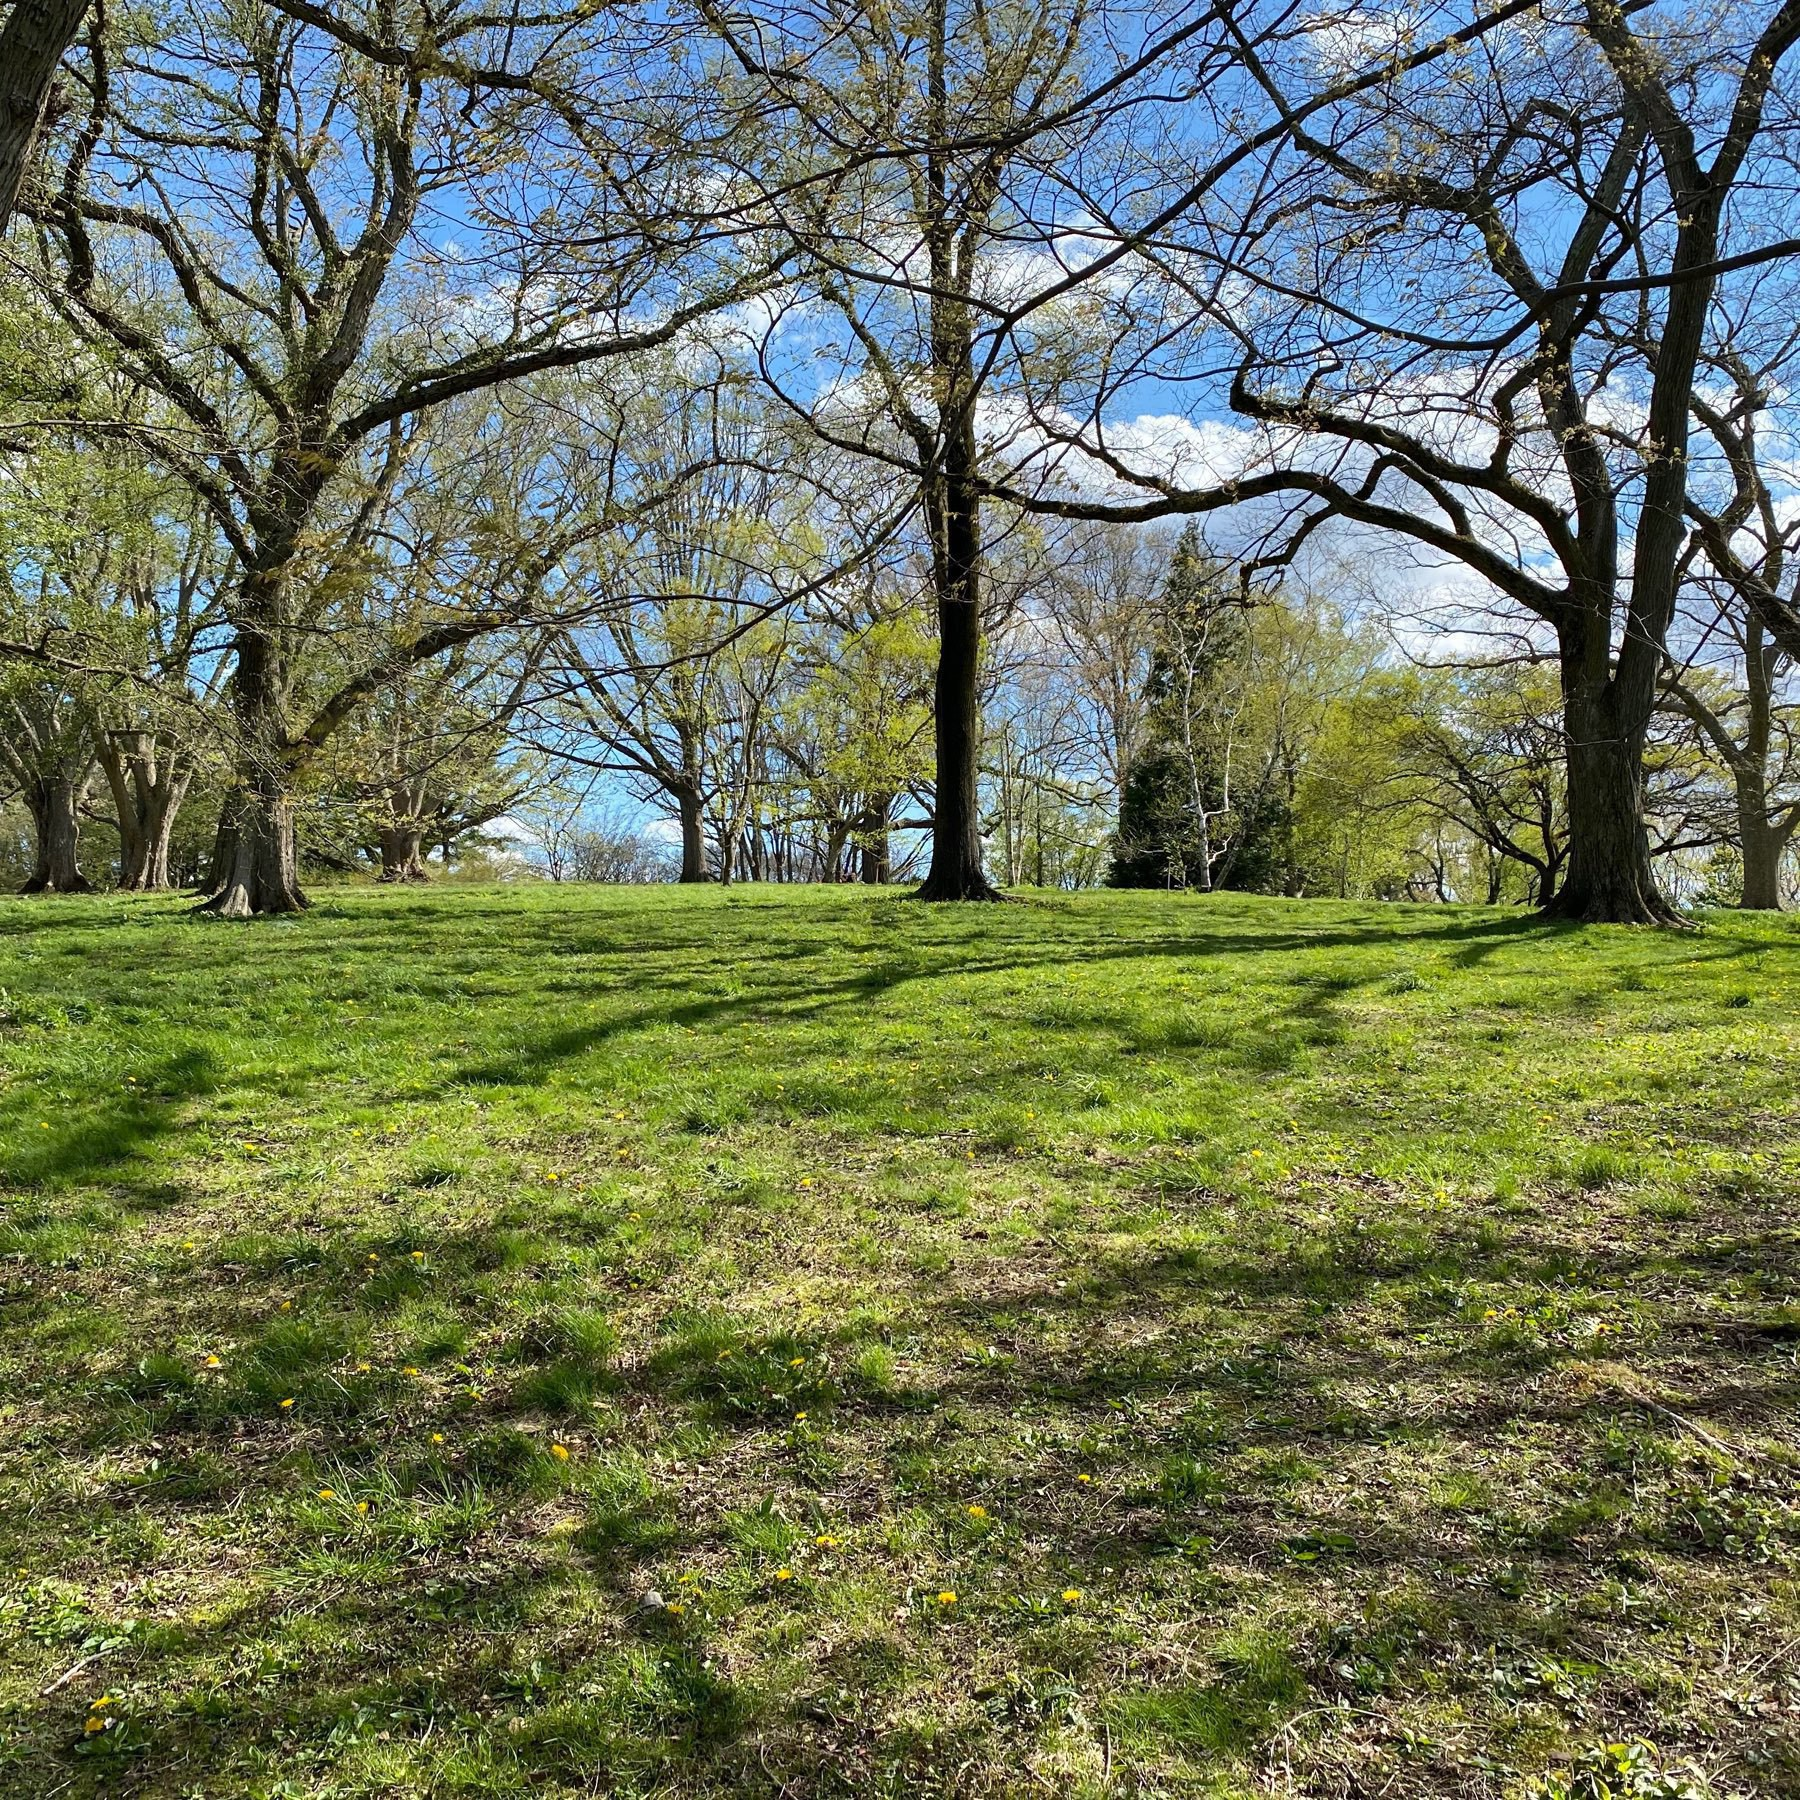 picture of a grassy hill with trees and a blue sky behind